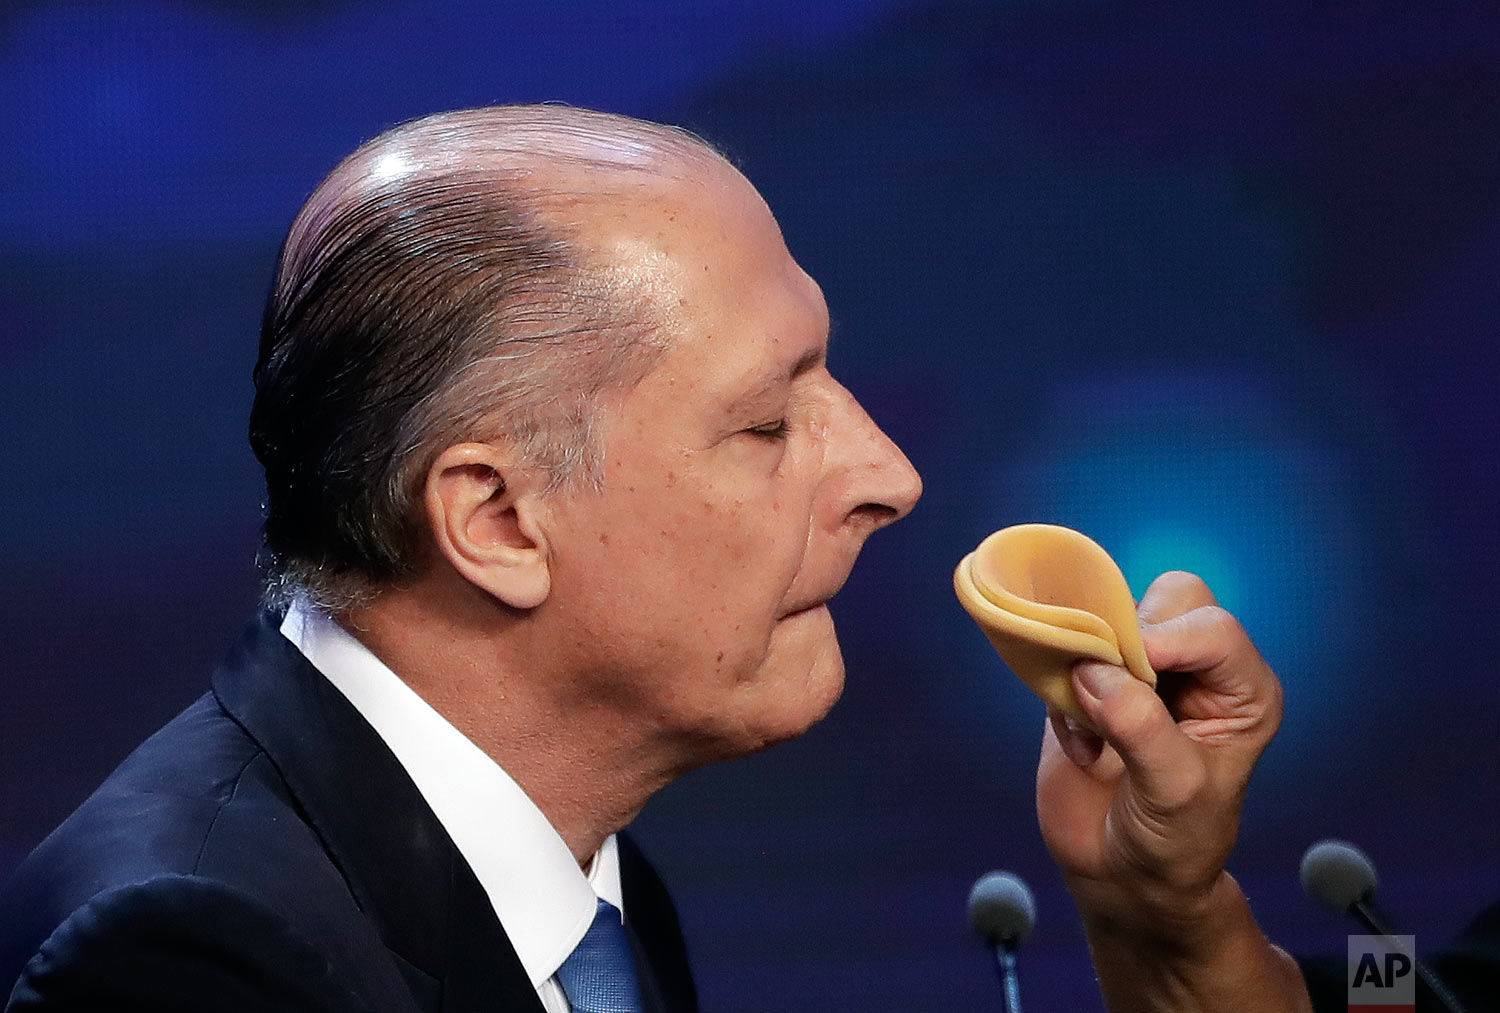 Geraldo Alckmin, former Sao Paulo governor and presidential hopeful with the Social Democratic Party, gets his make up done during a break at a presidential debate in Sao Paulo, Brazil, Aug. 10, 2018. Brazil will hold general elections on Oct. 7. (AP Photo/Andre Penner)